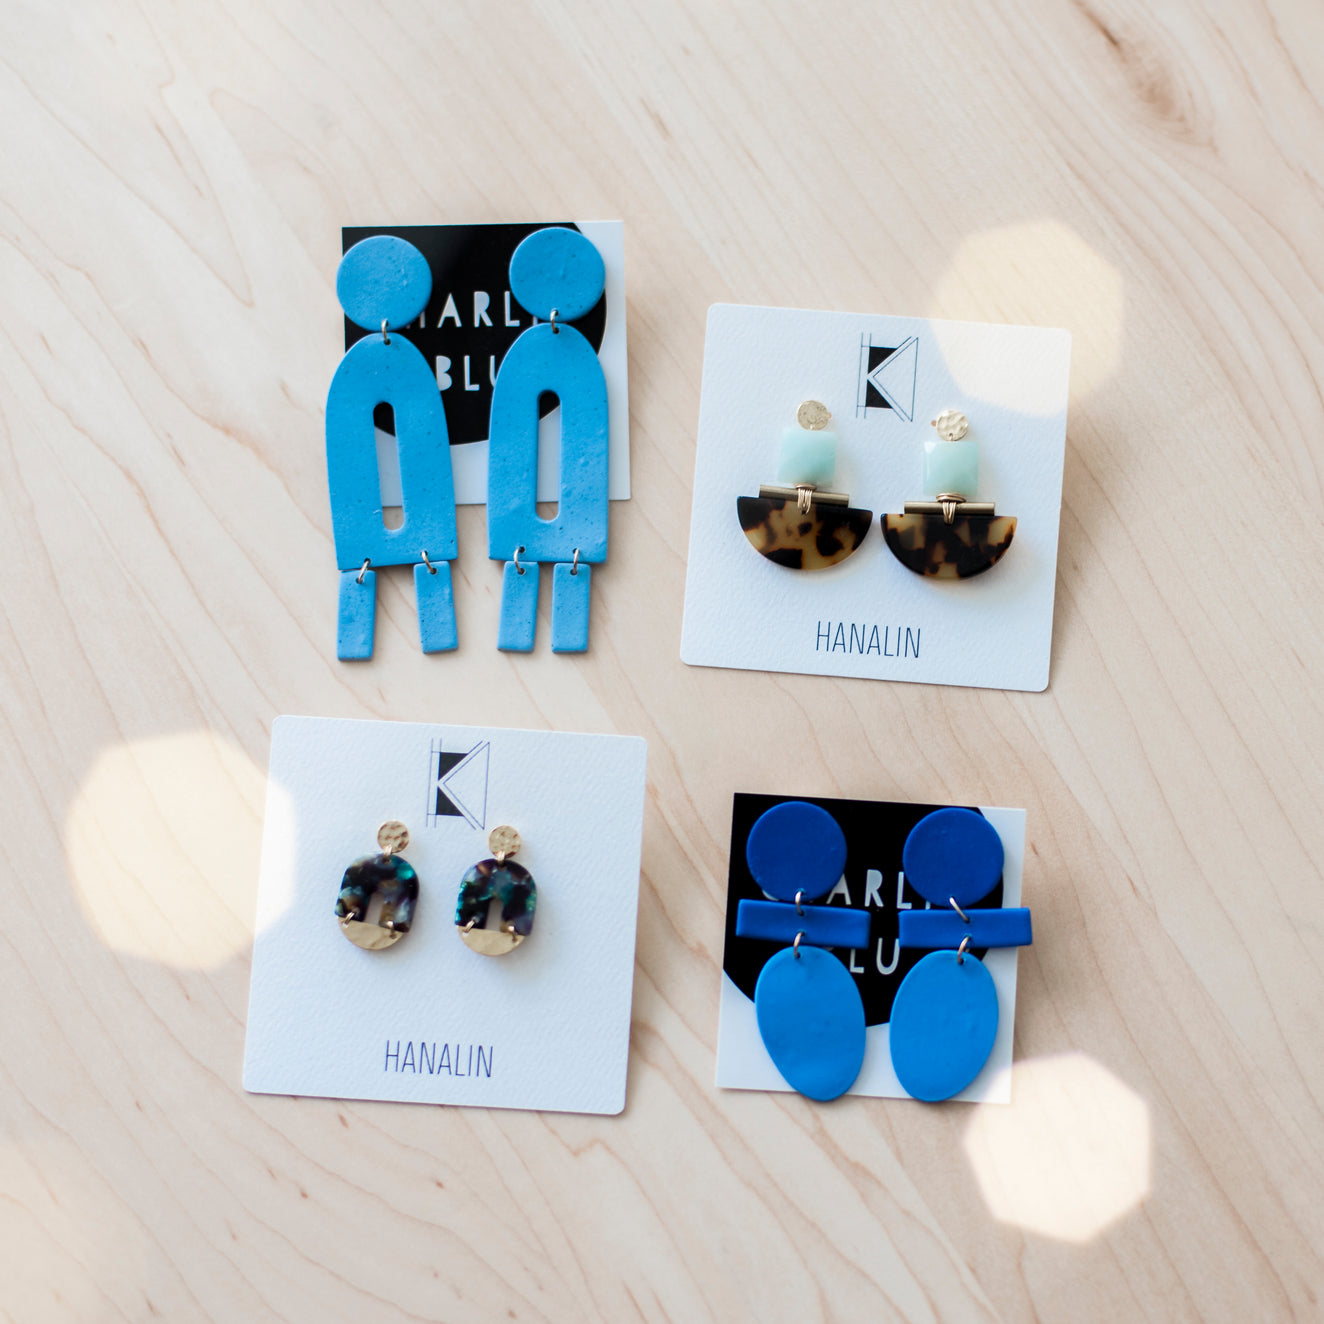 Earrings on a wood surface with twinkle lights